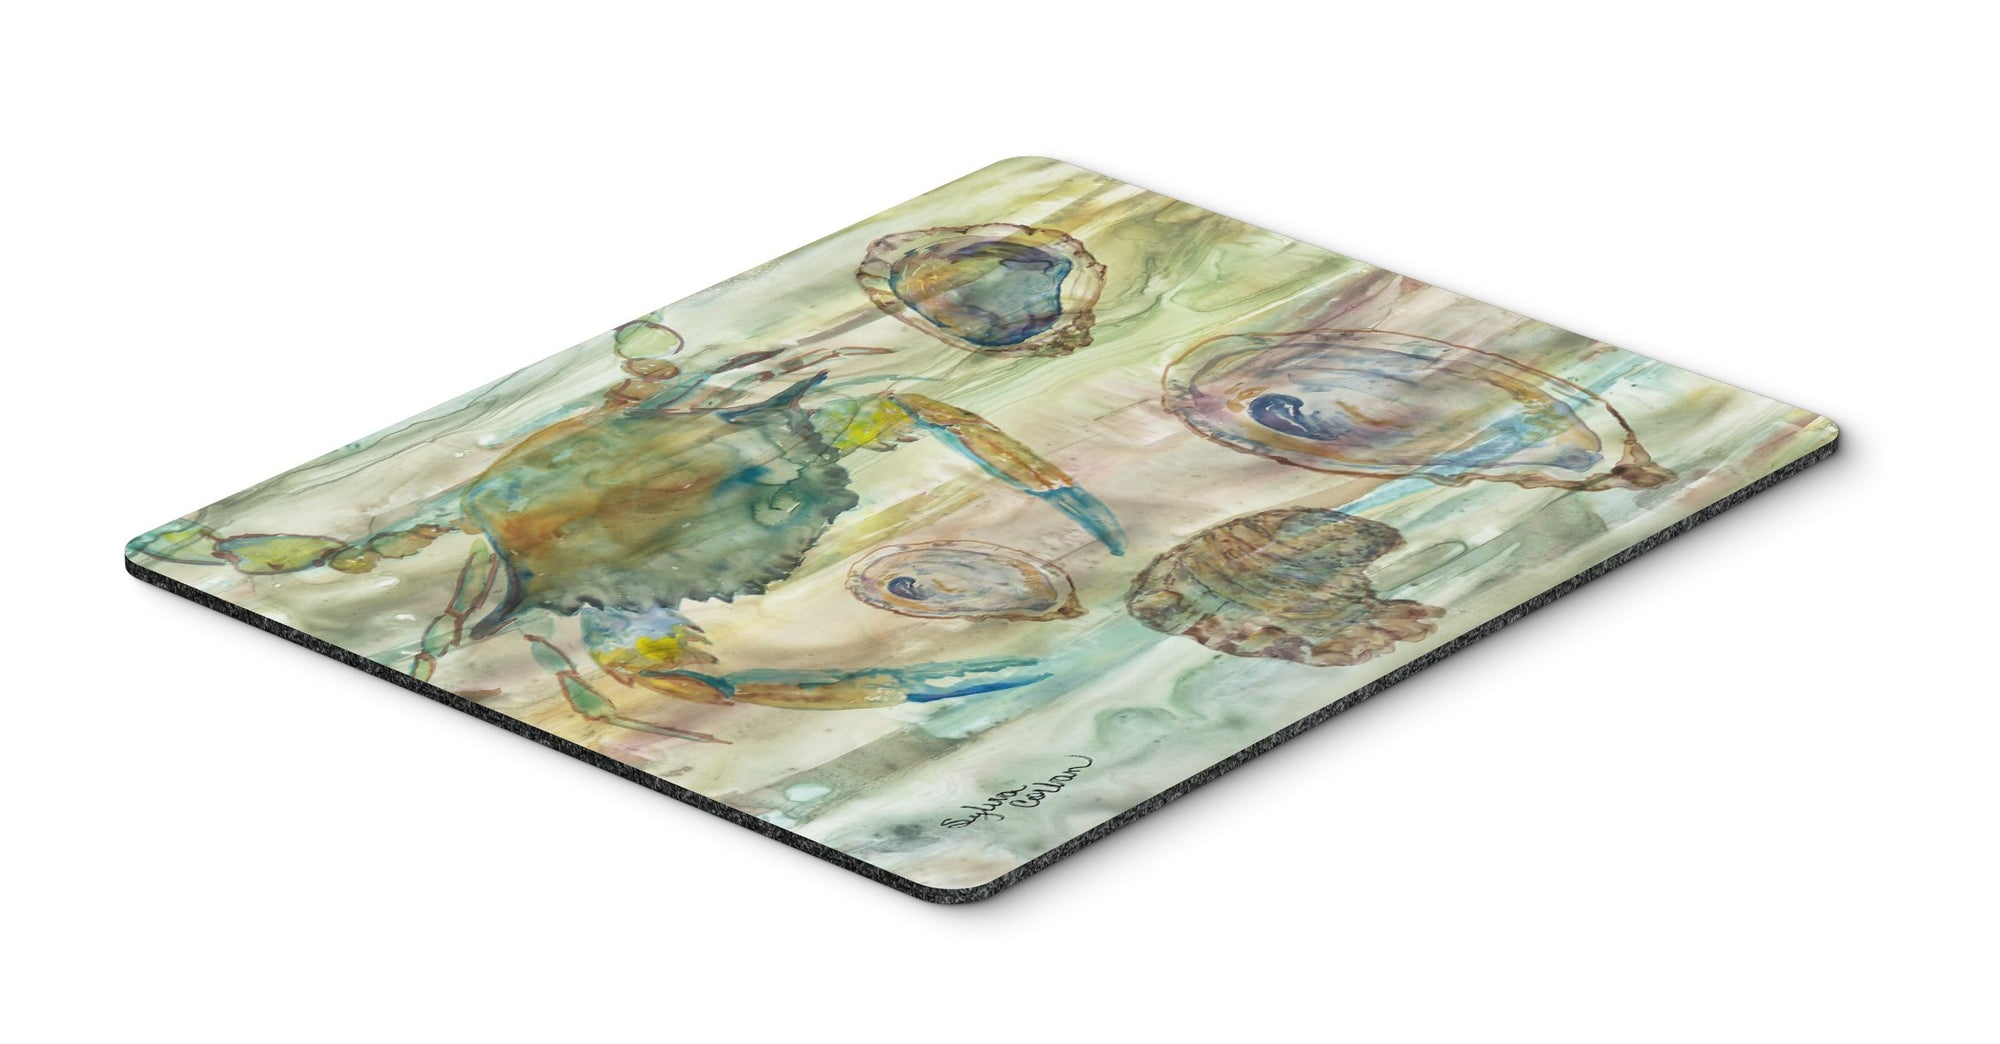 Crab, Shrimp and Oyster Sunset Mouse Pad, Hot Pad or Trivet SC2017MP by Caroline's Treasures